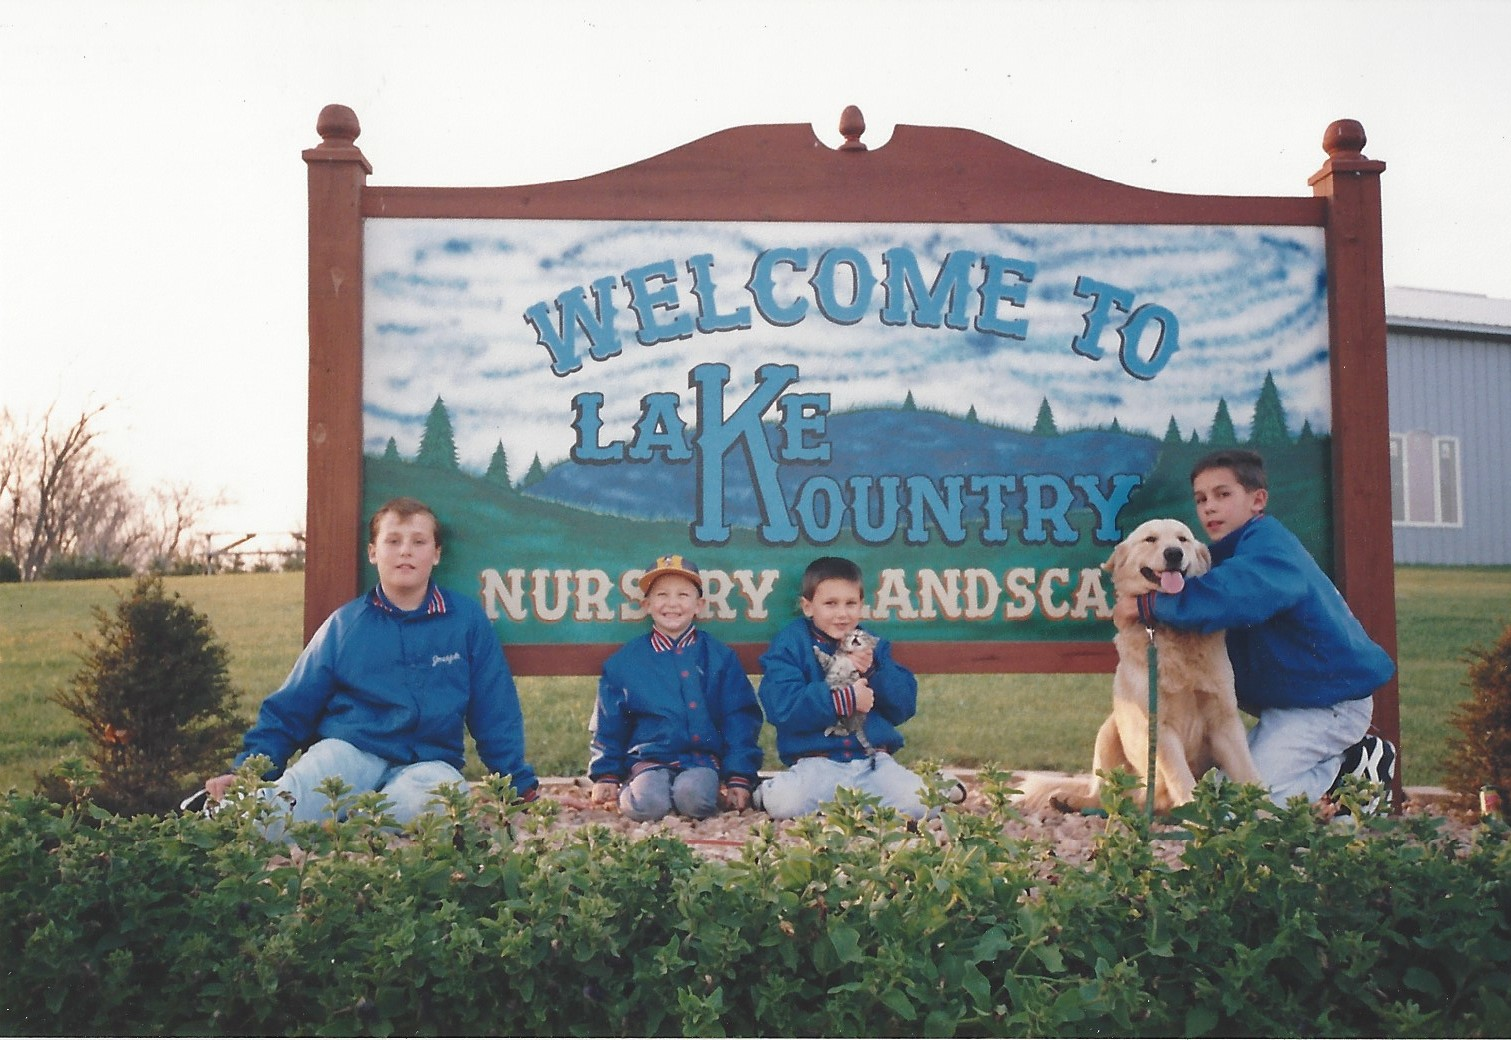 Lake Kountry - Sign With All 4 Boys